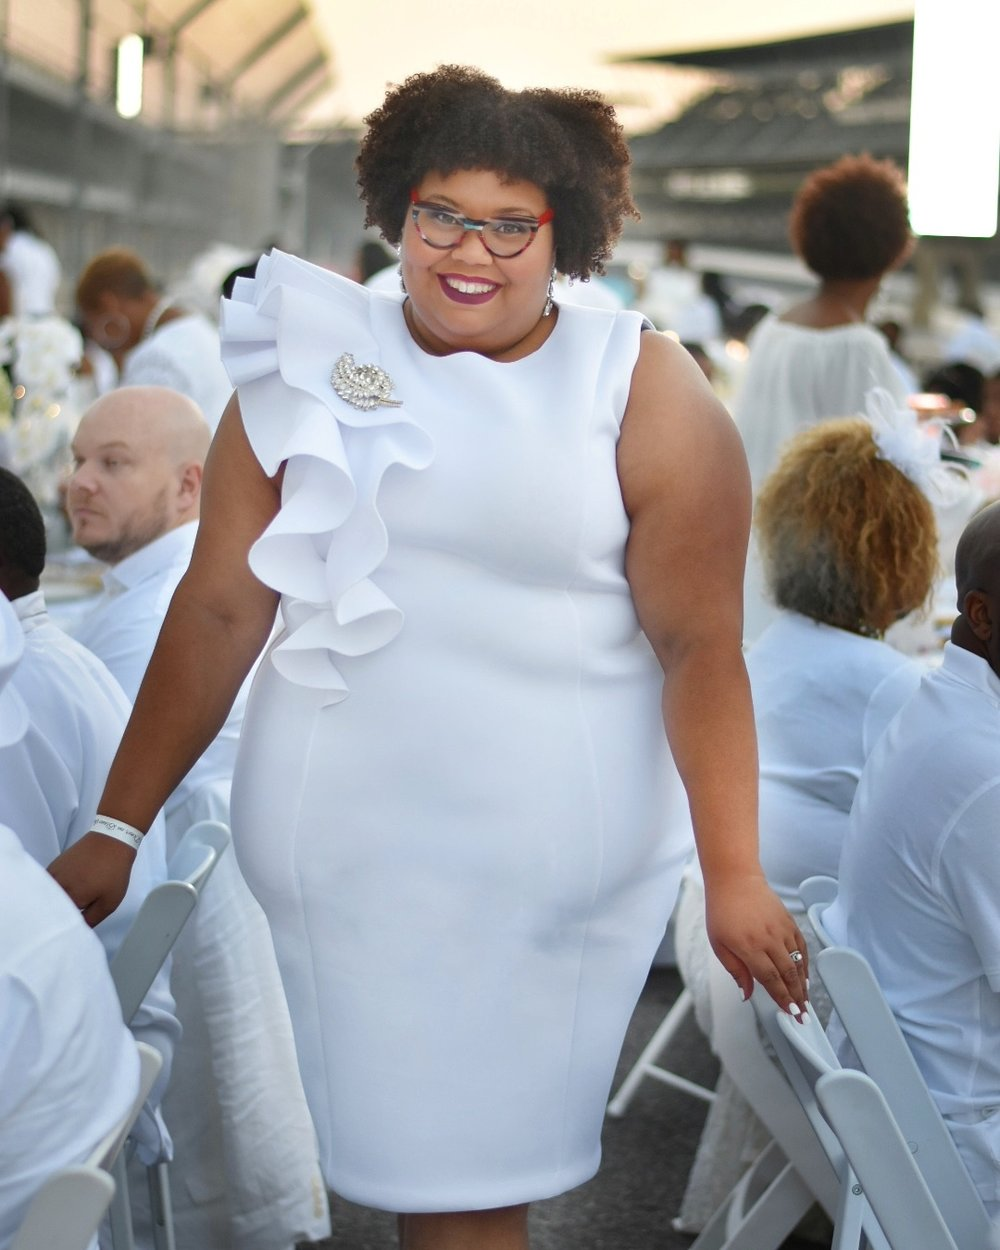 Diner en Blanc at the Indianapolis Motor Speedway